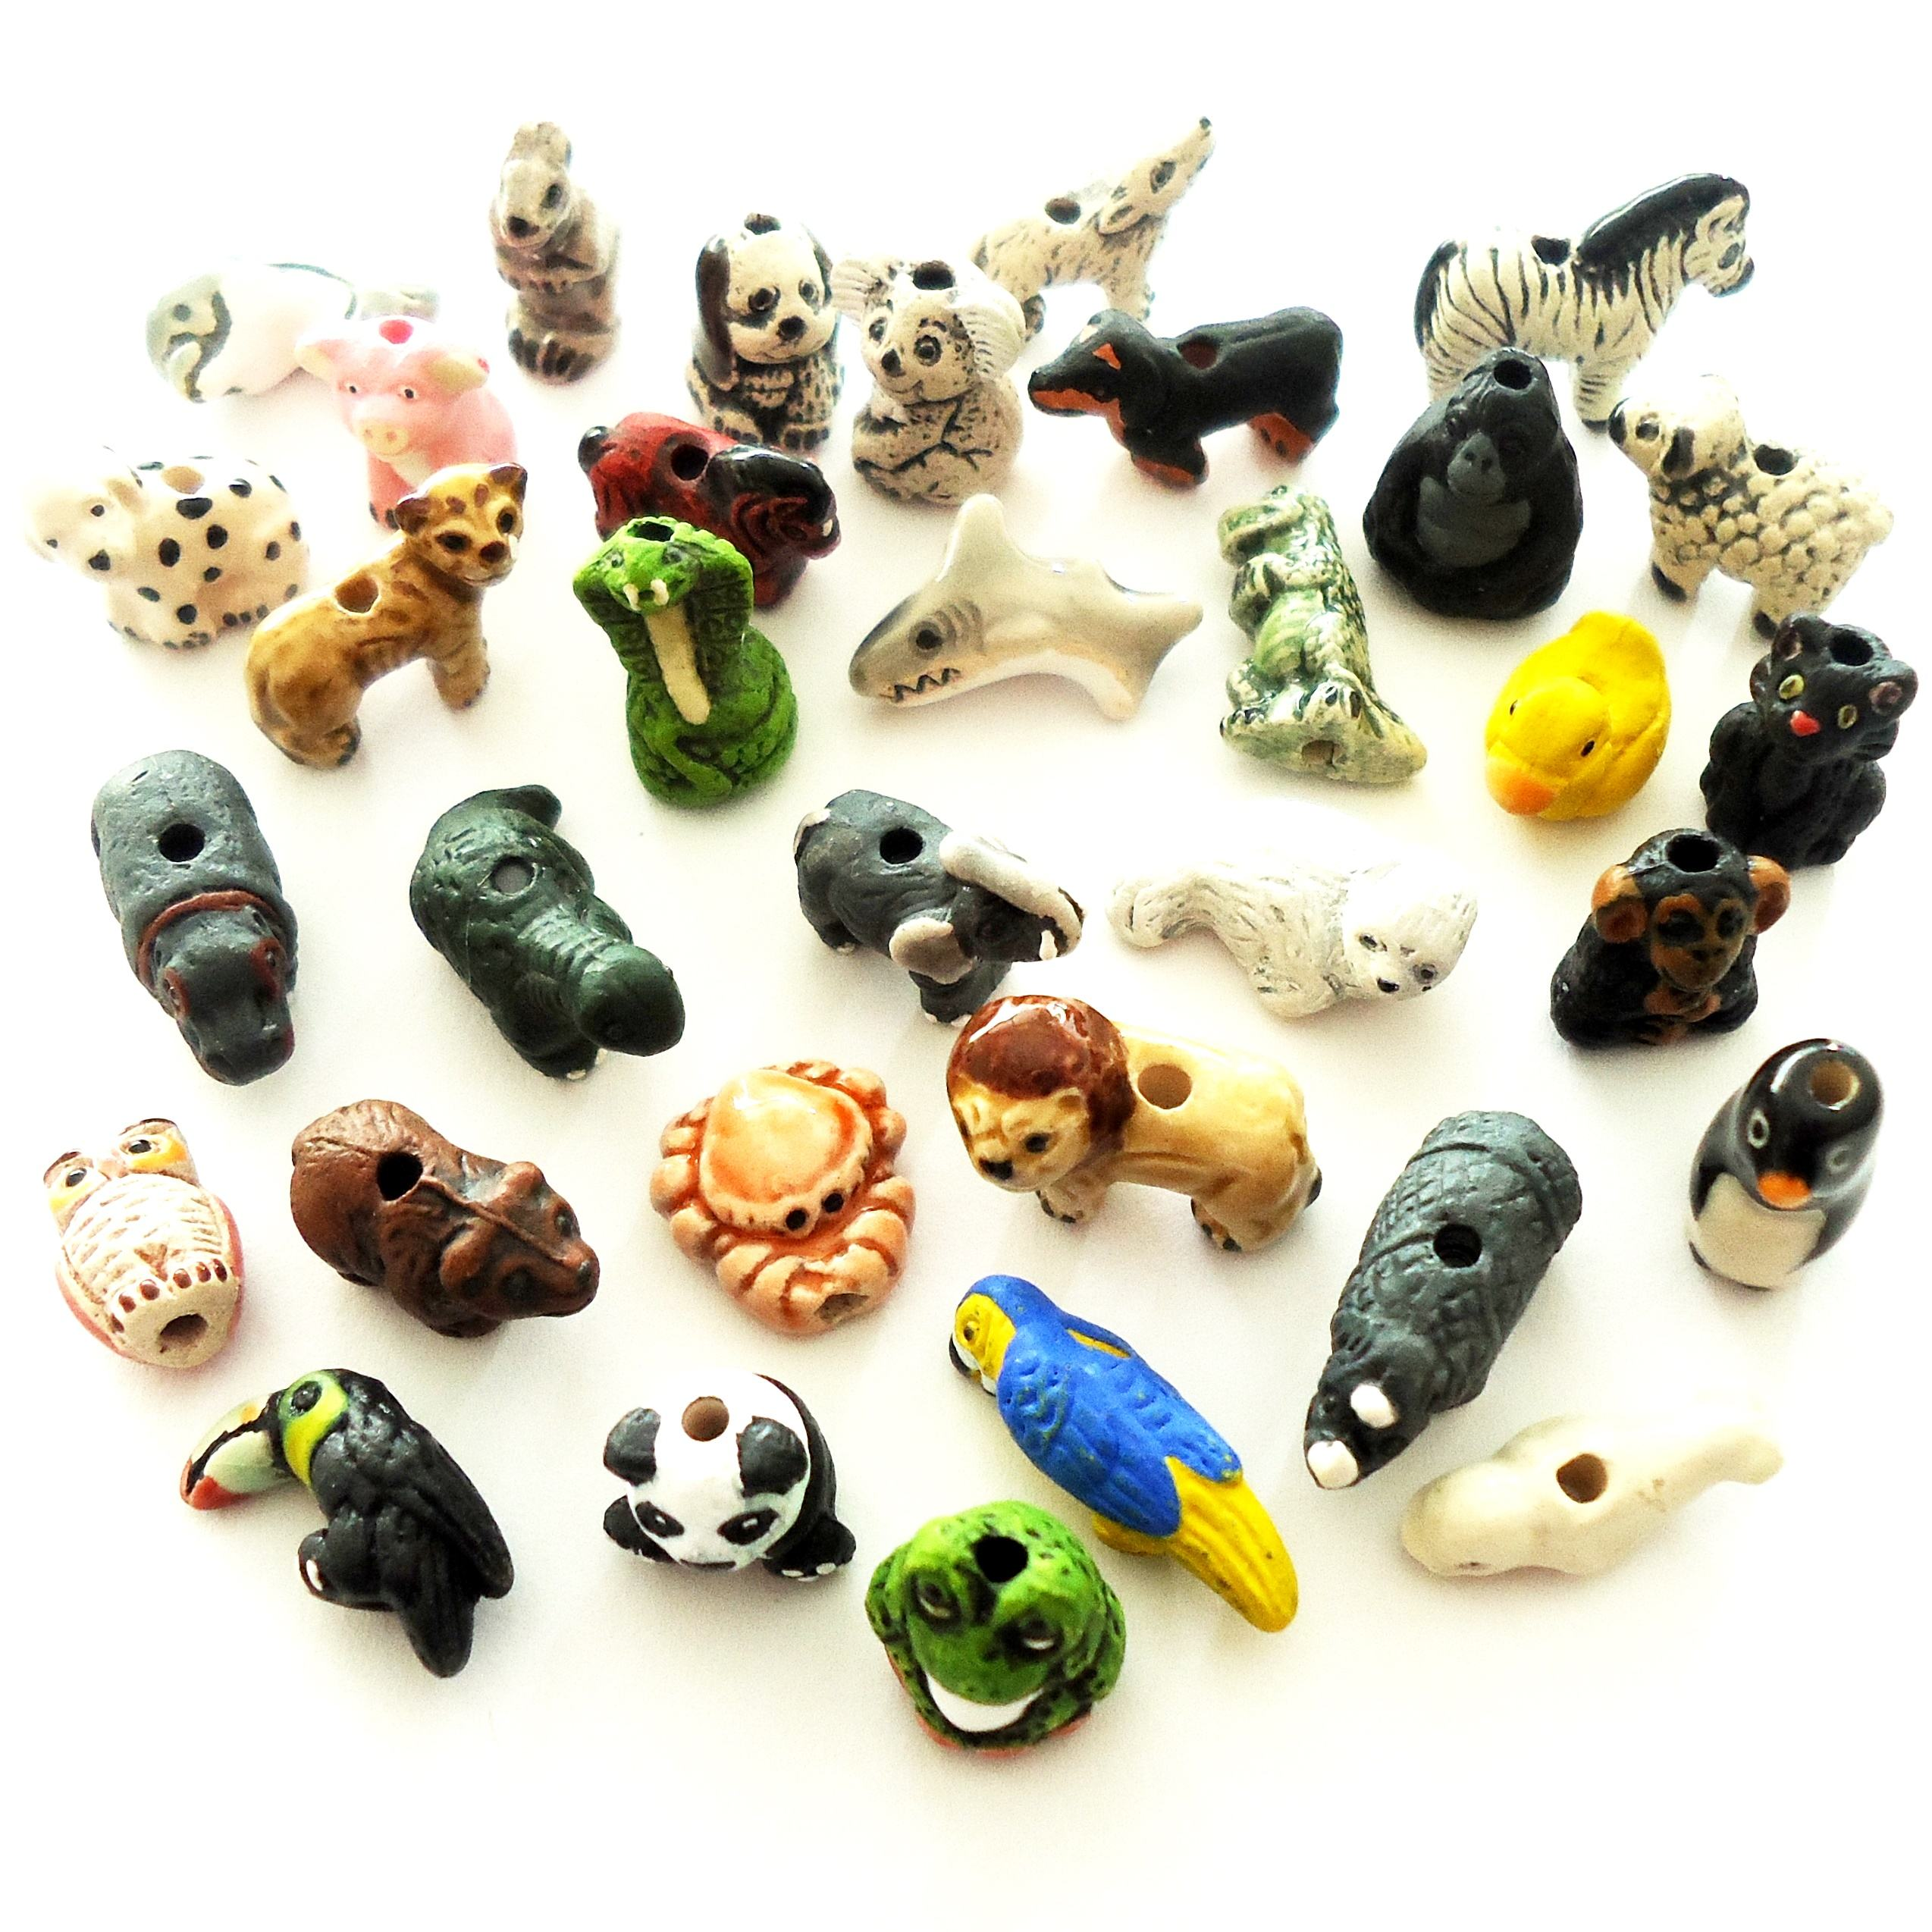 Wholesale Peruvian animal shaped ceramic beads for rosary and earrings making, Small animal shaped ceramic bead